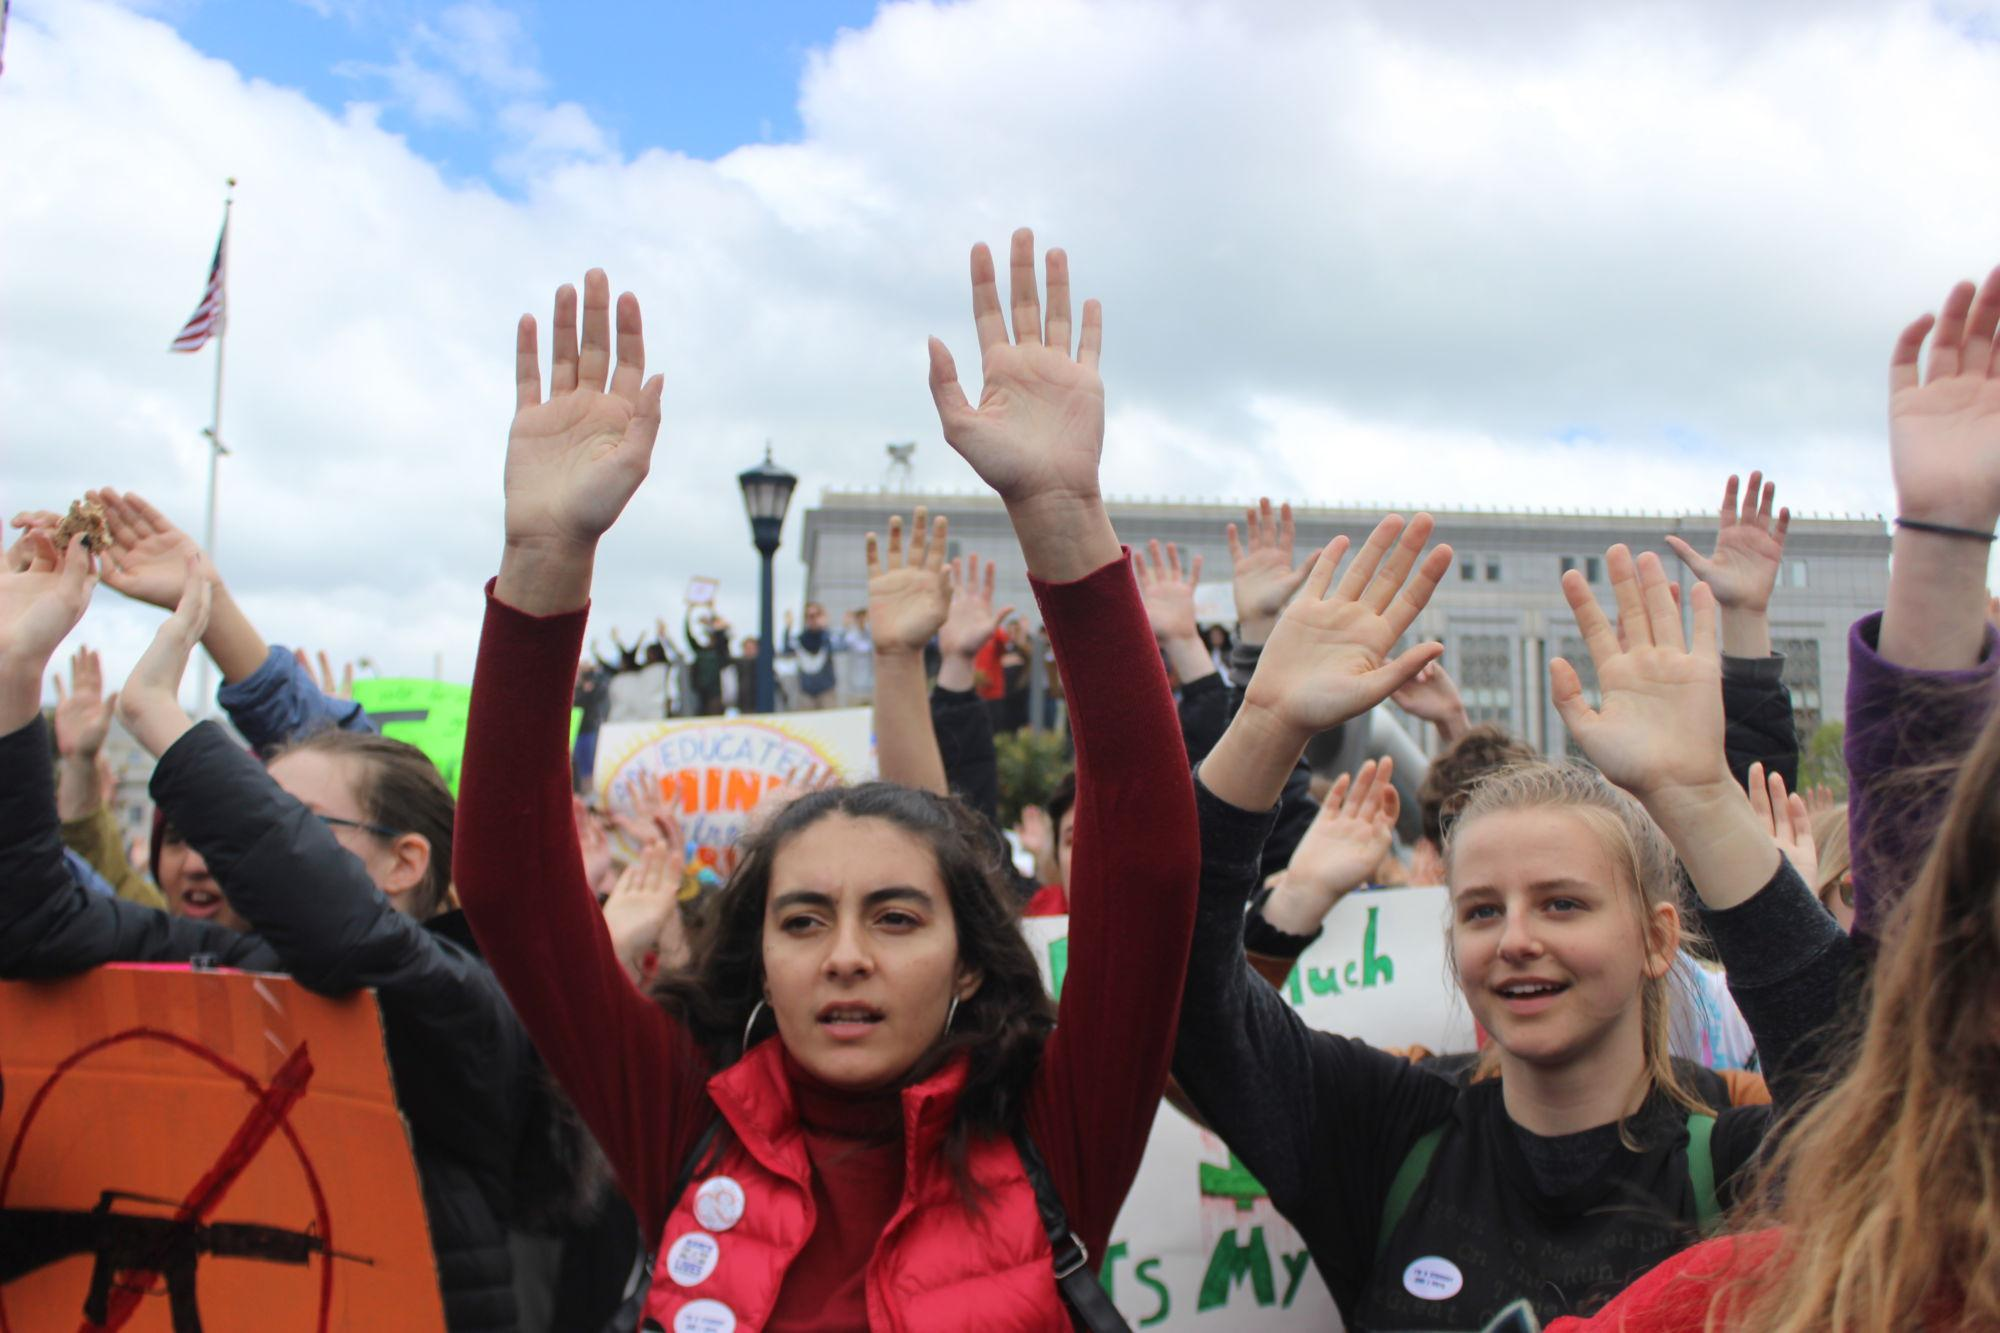 Students+including+sophomore+Maria+Saloom+and+senior+Emma+Ross+raise+arms+in+honor+of+the+all+those+who+have+lost+their+lives+due+to+unfair+gun+policies